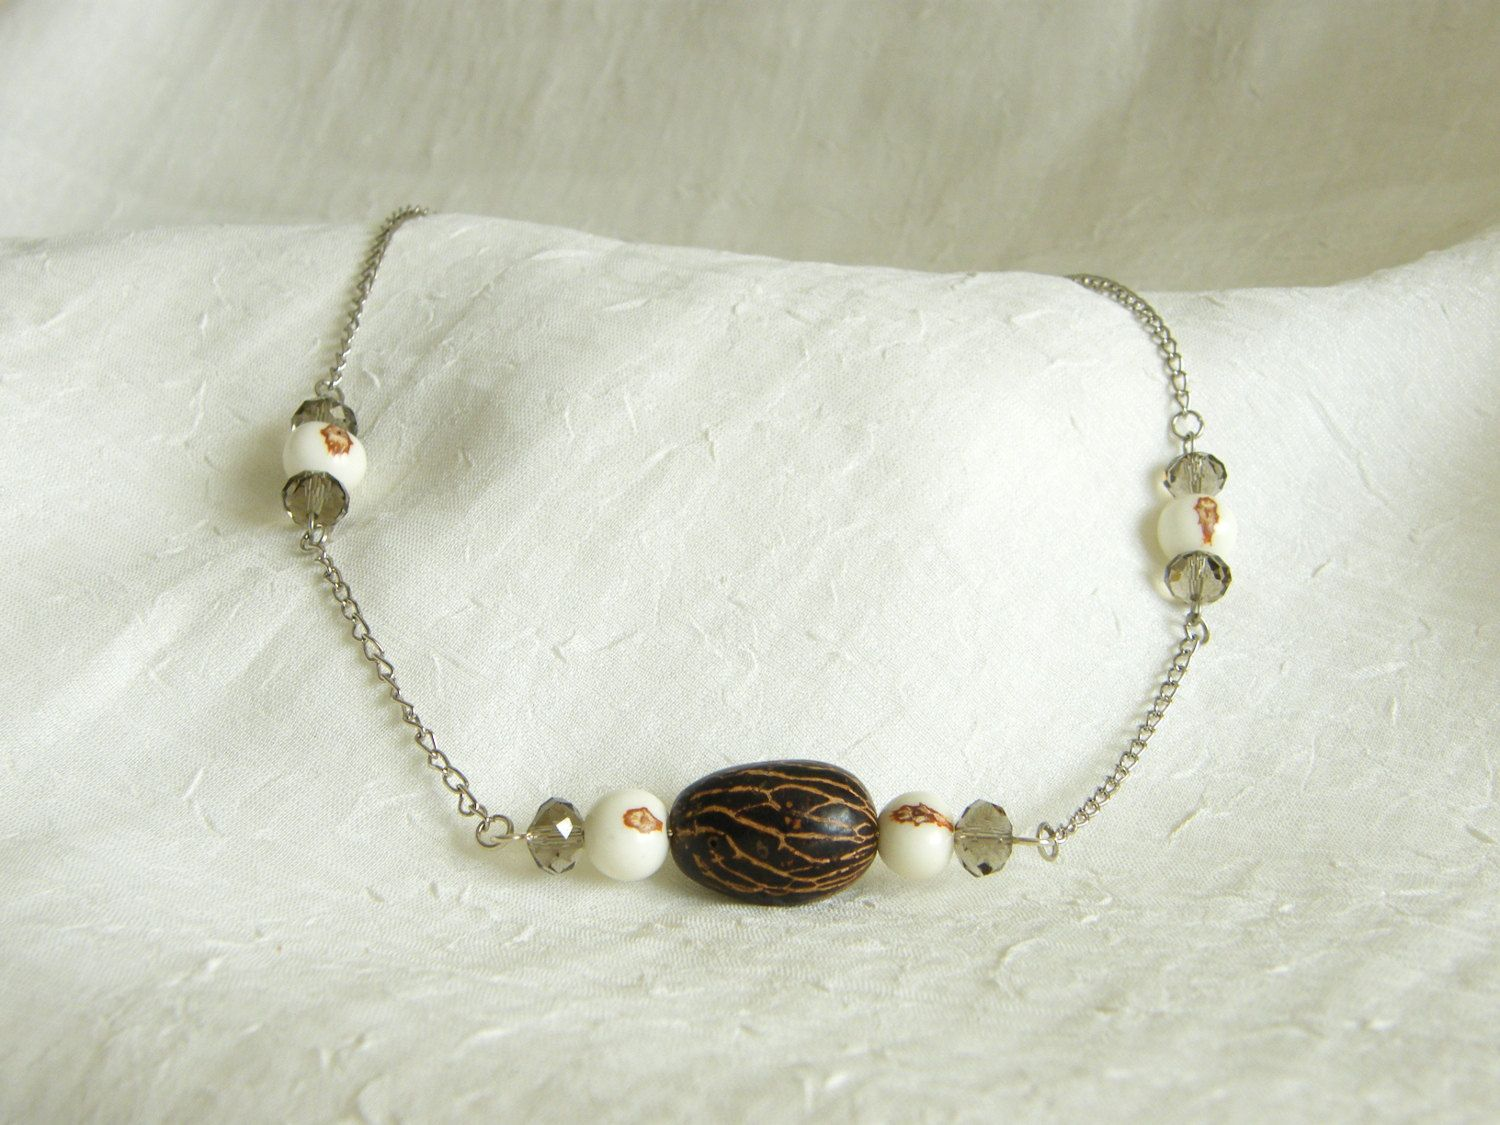 Handmade Brazilian Açaí and Paxiubinha Seeds, Czech Crystals and Silver Chain Chocker - Eco-Friendly Necklace by LauraBijoux on Etsy